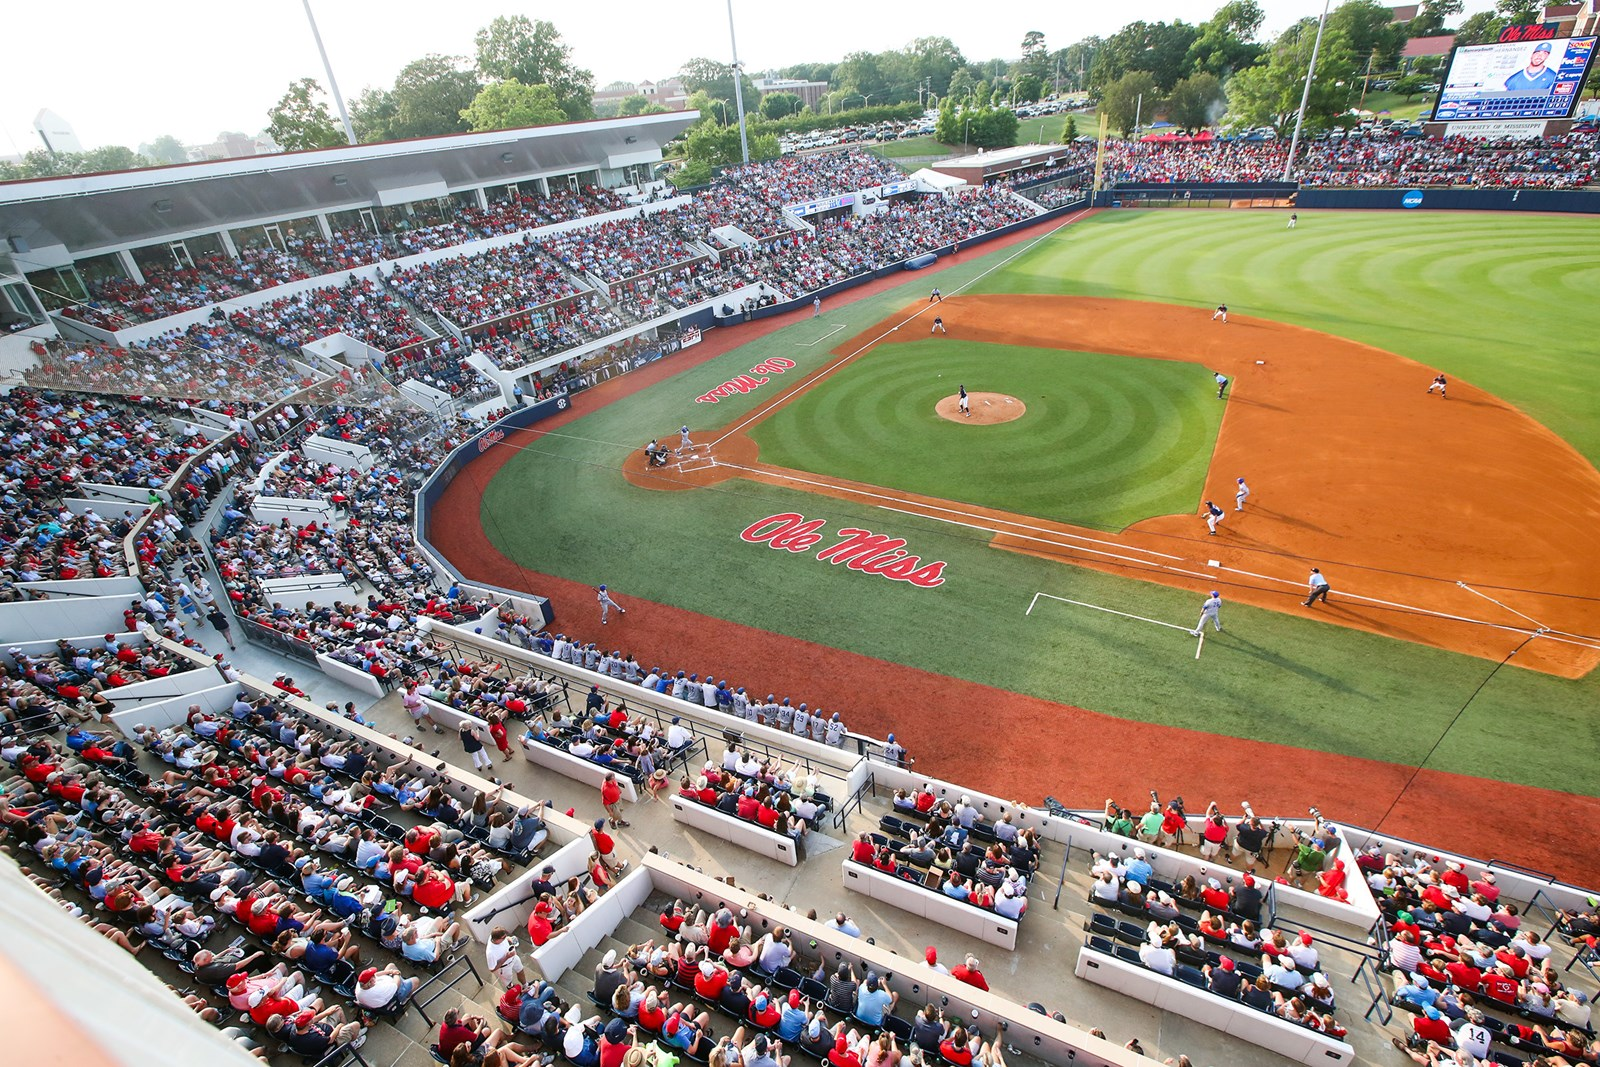 This picture is of Swayze Field taken from the third level of the stadium